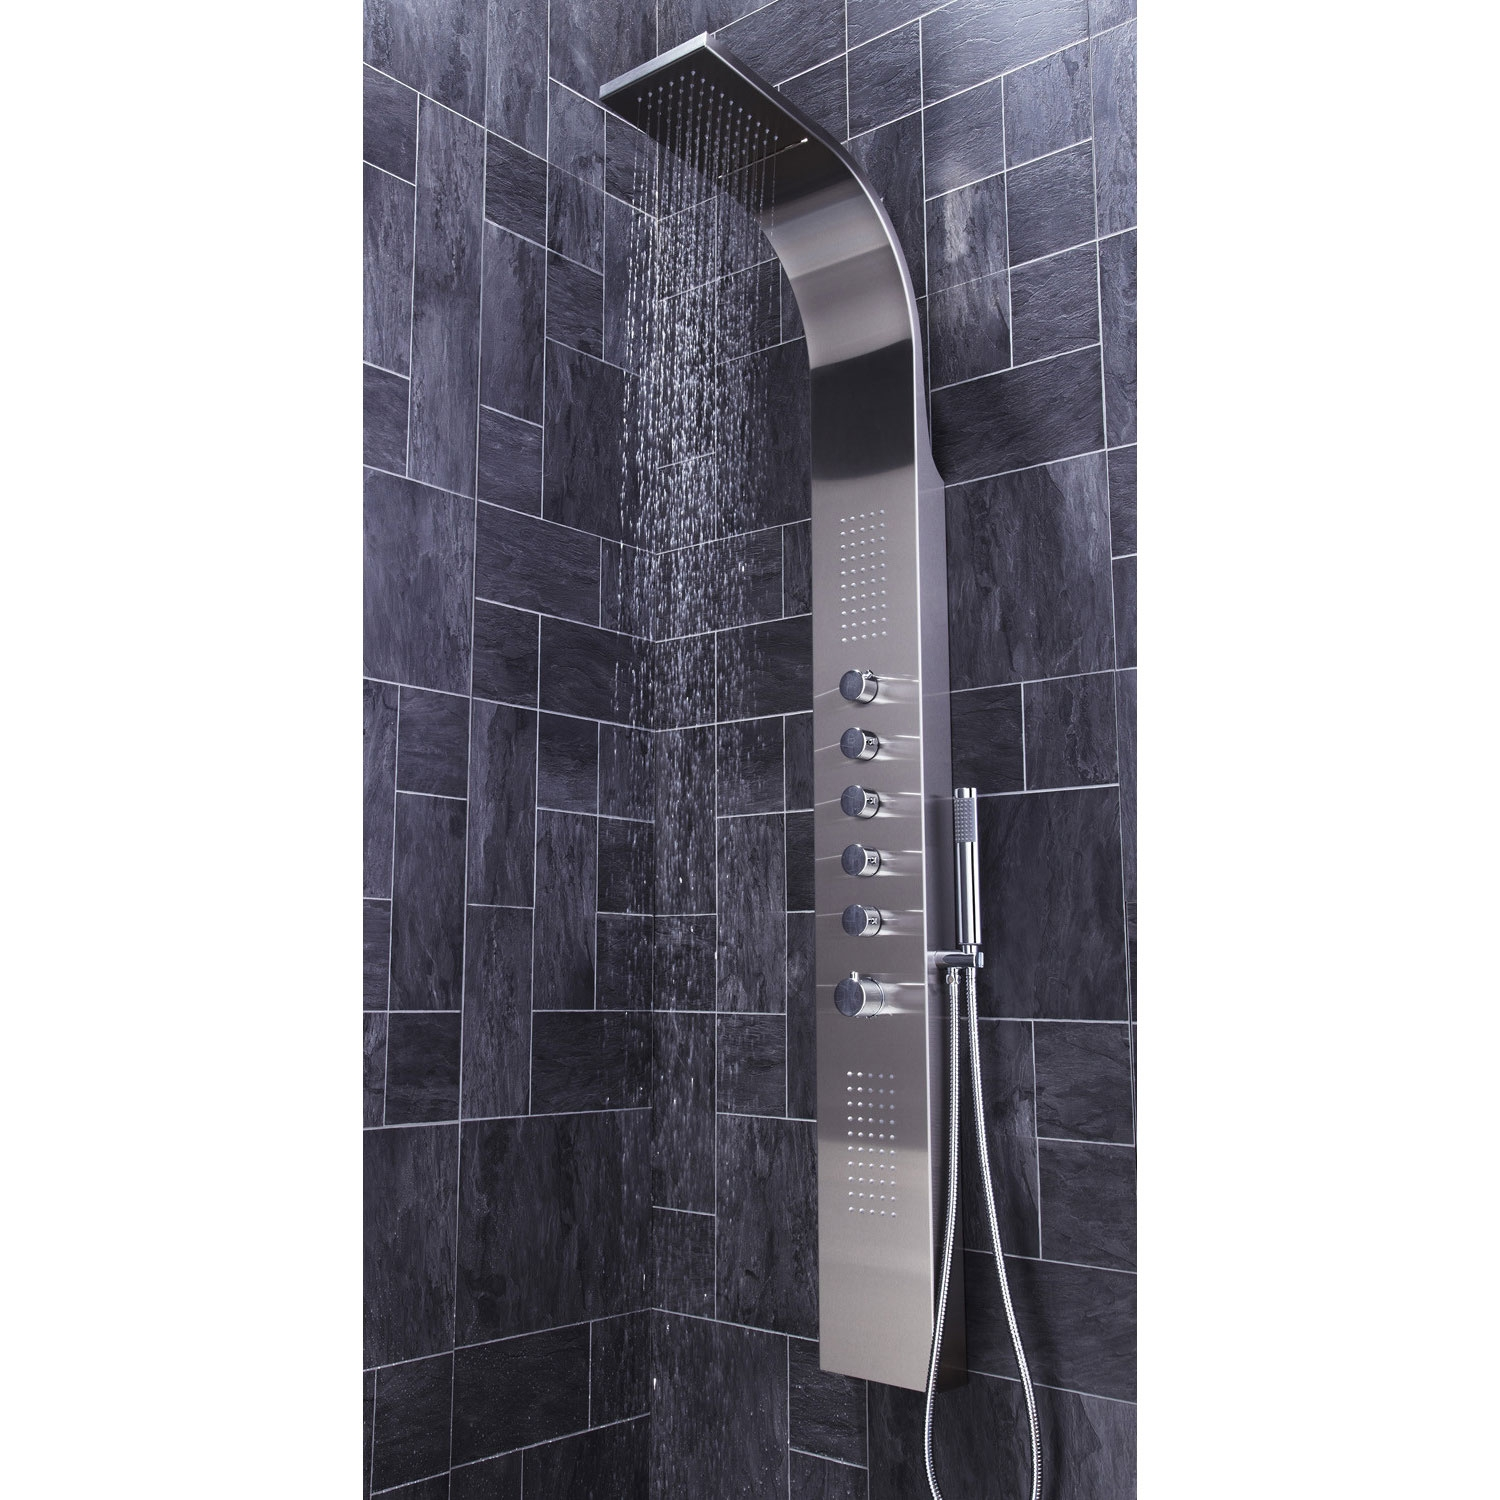 Verona Dharma Thermostatic Shower Panel 2 Built-in Body Jets with Shower Hand-0